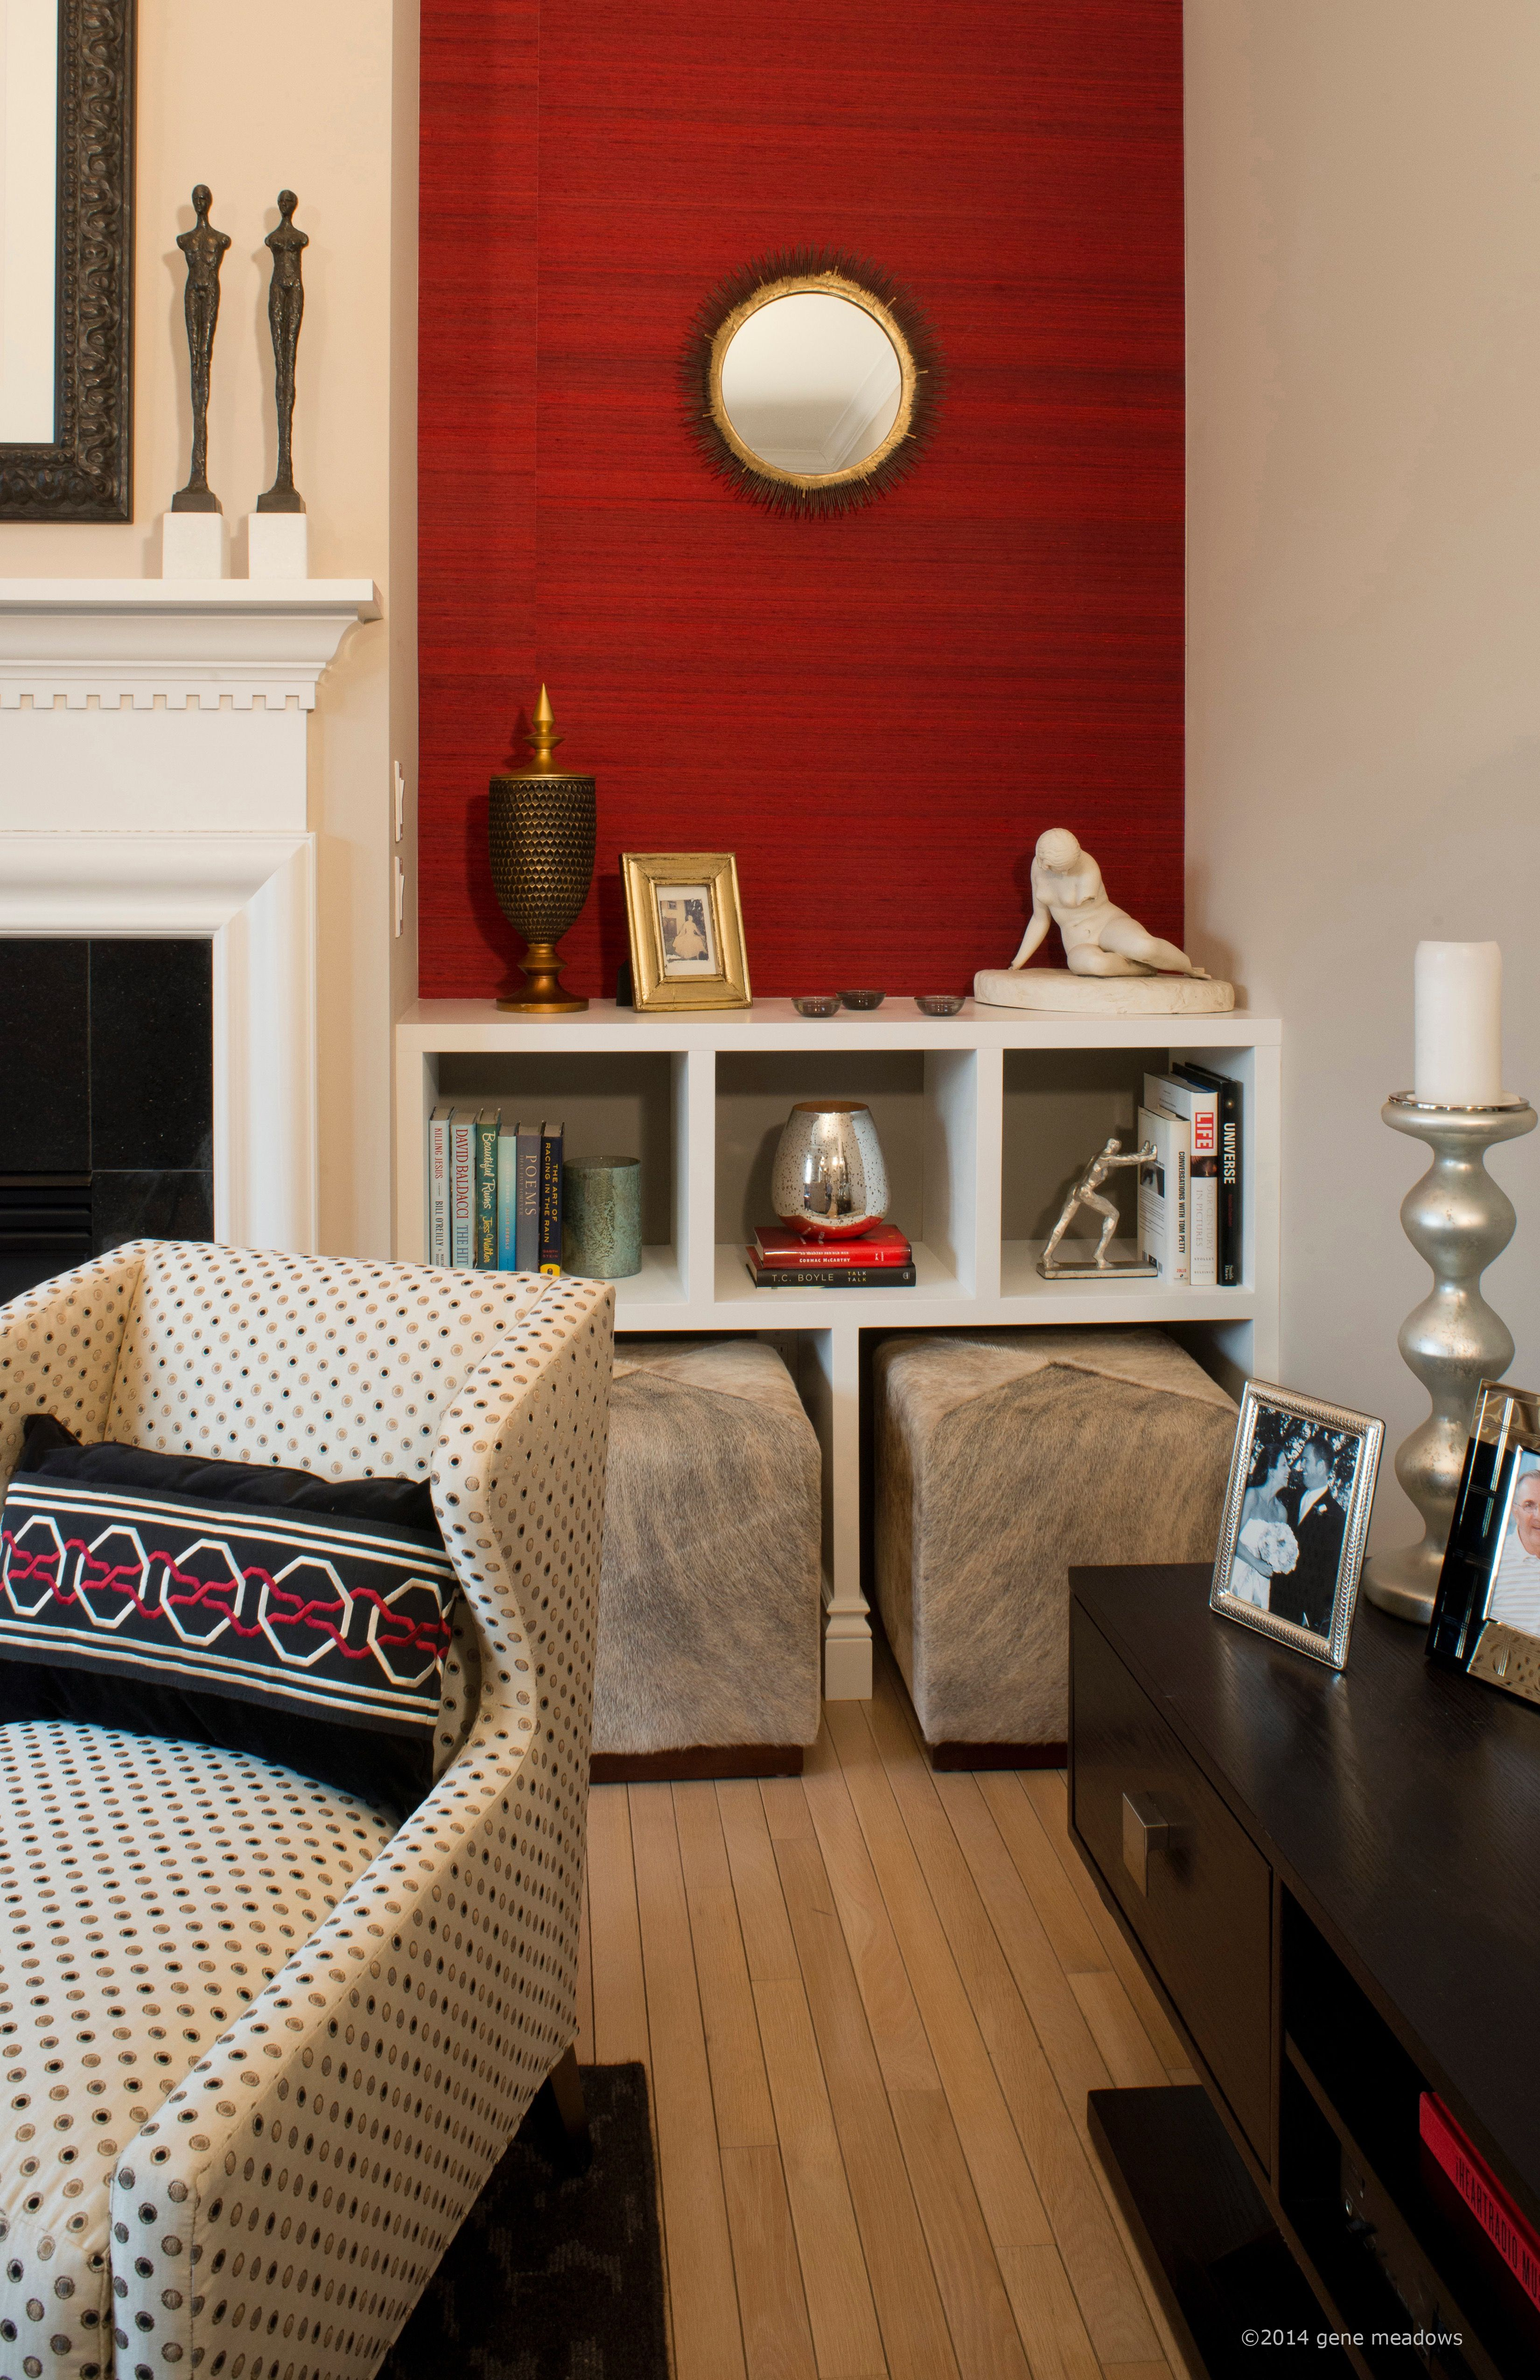 The Interior Design Firm, Dan Davis Design Designed Custom Built In  Bookshelves In This Small Condo, For Display And To House Custom Cowhide  Ottomans For ...